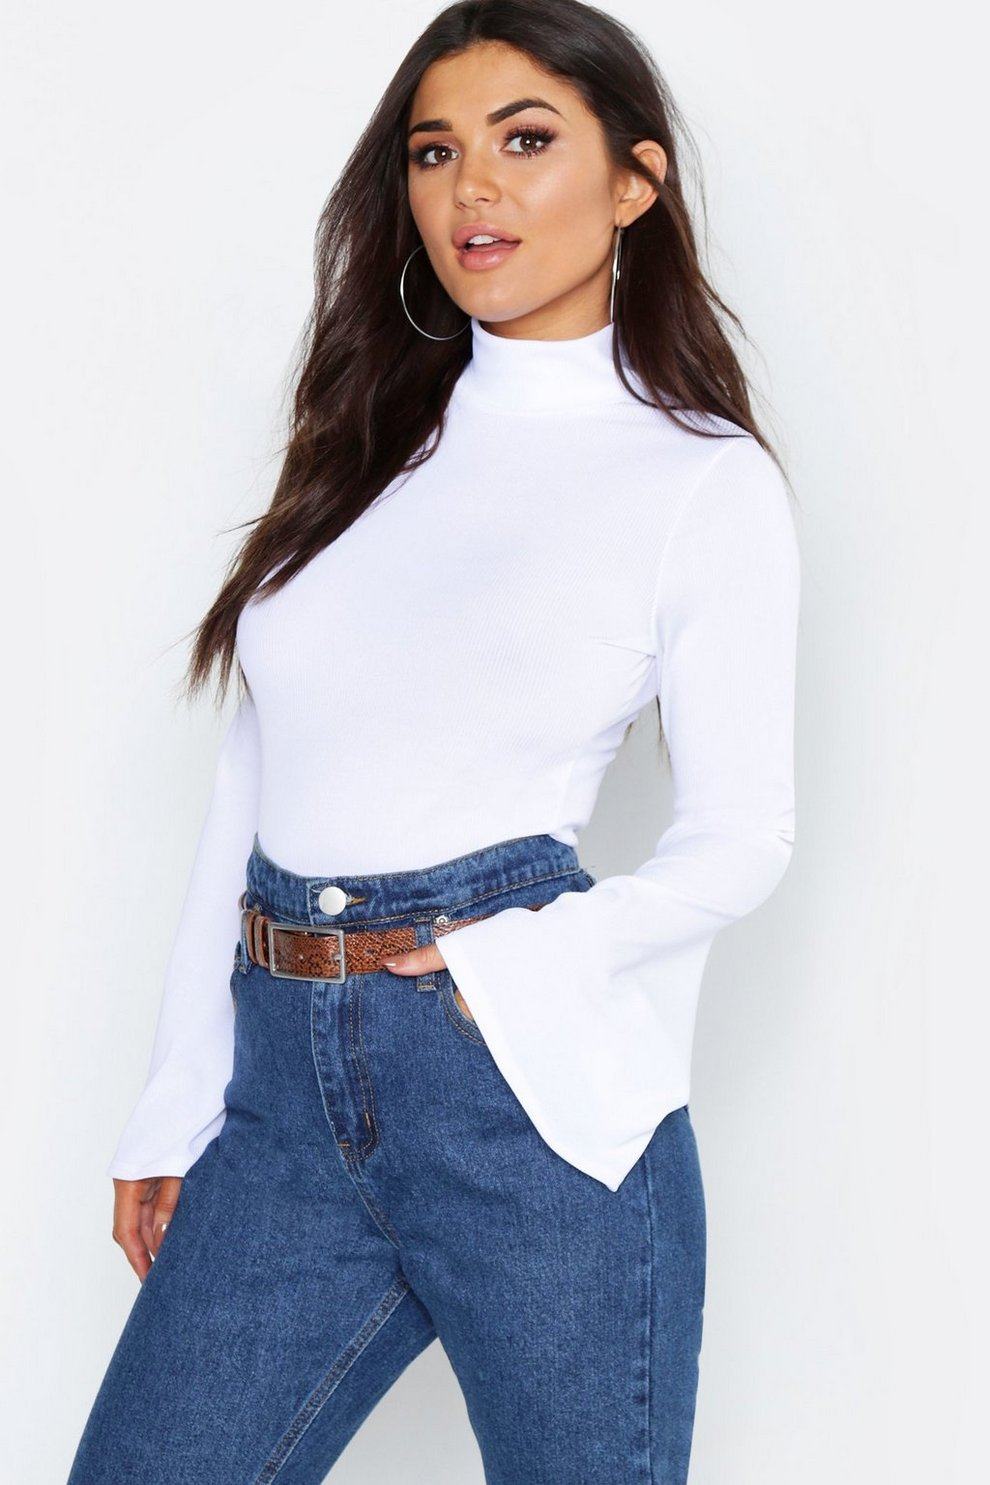 828a86f59ca687 Womens White Rib Turtle Neck Flare Sleeve Top. Hover to zoom